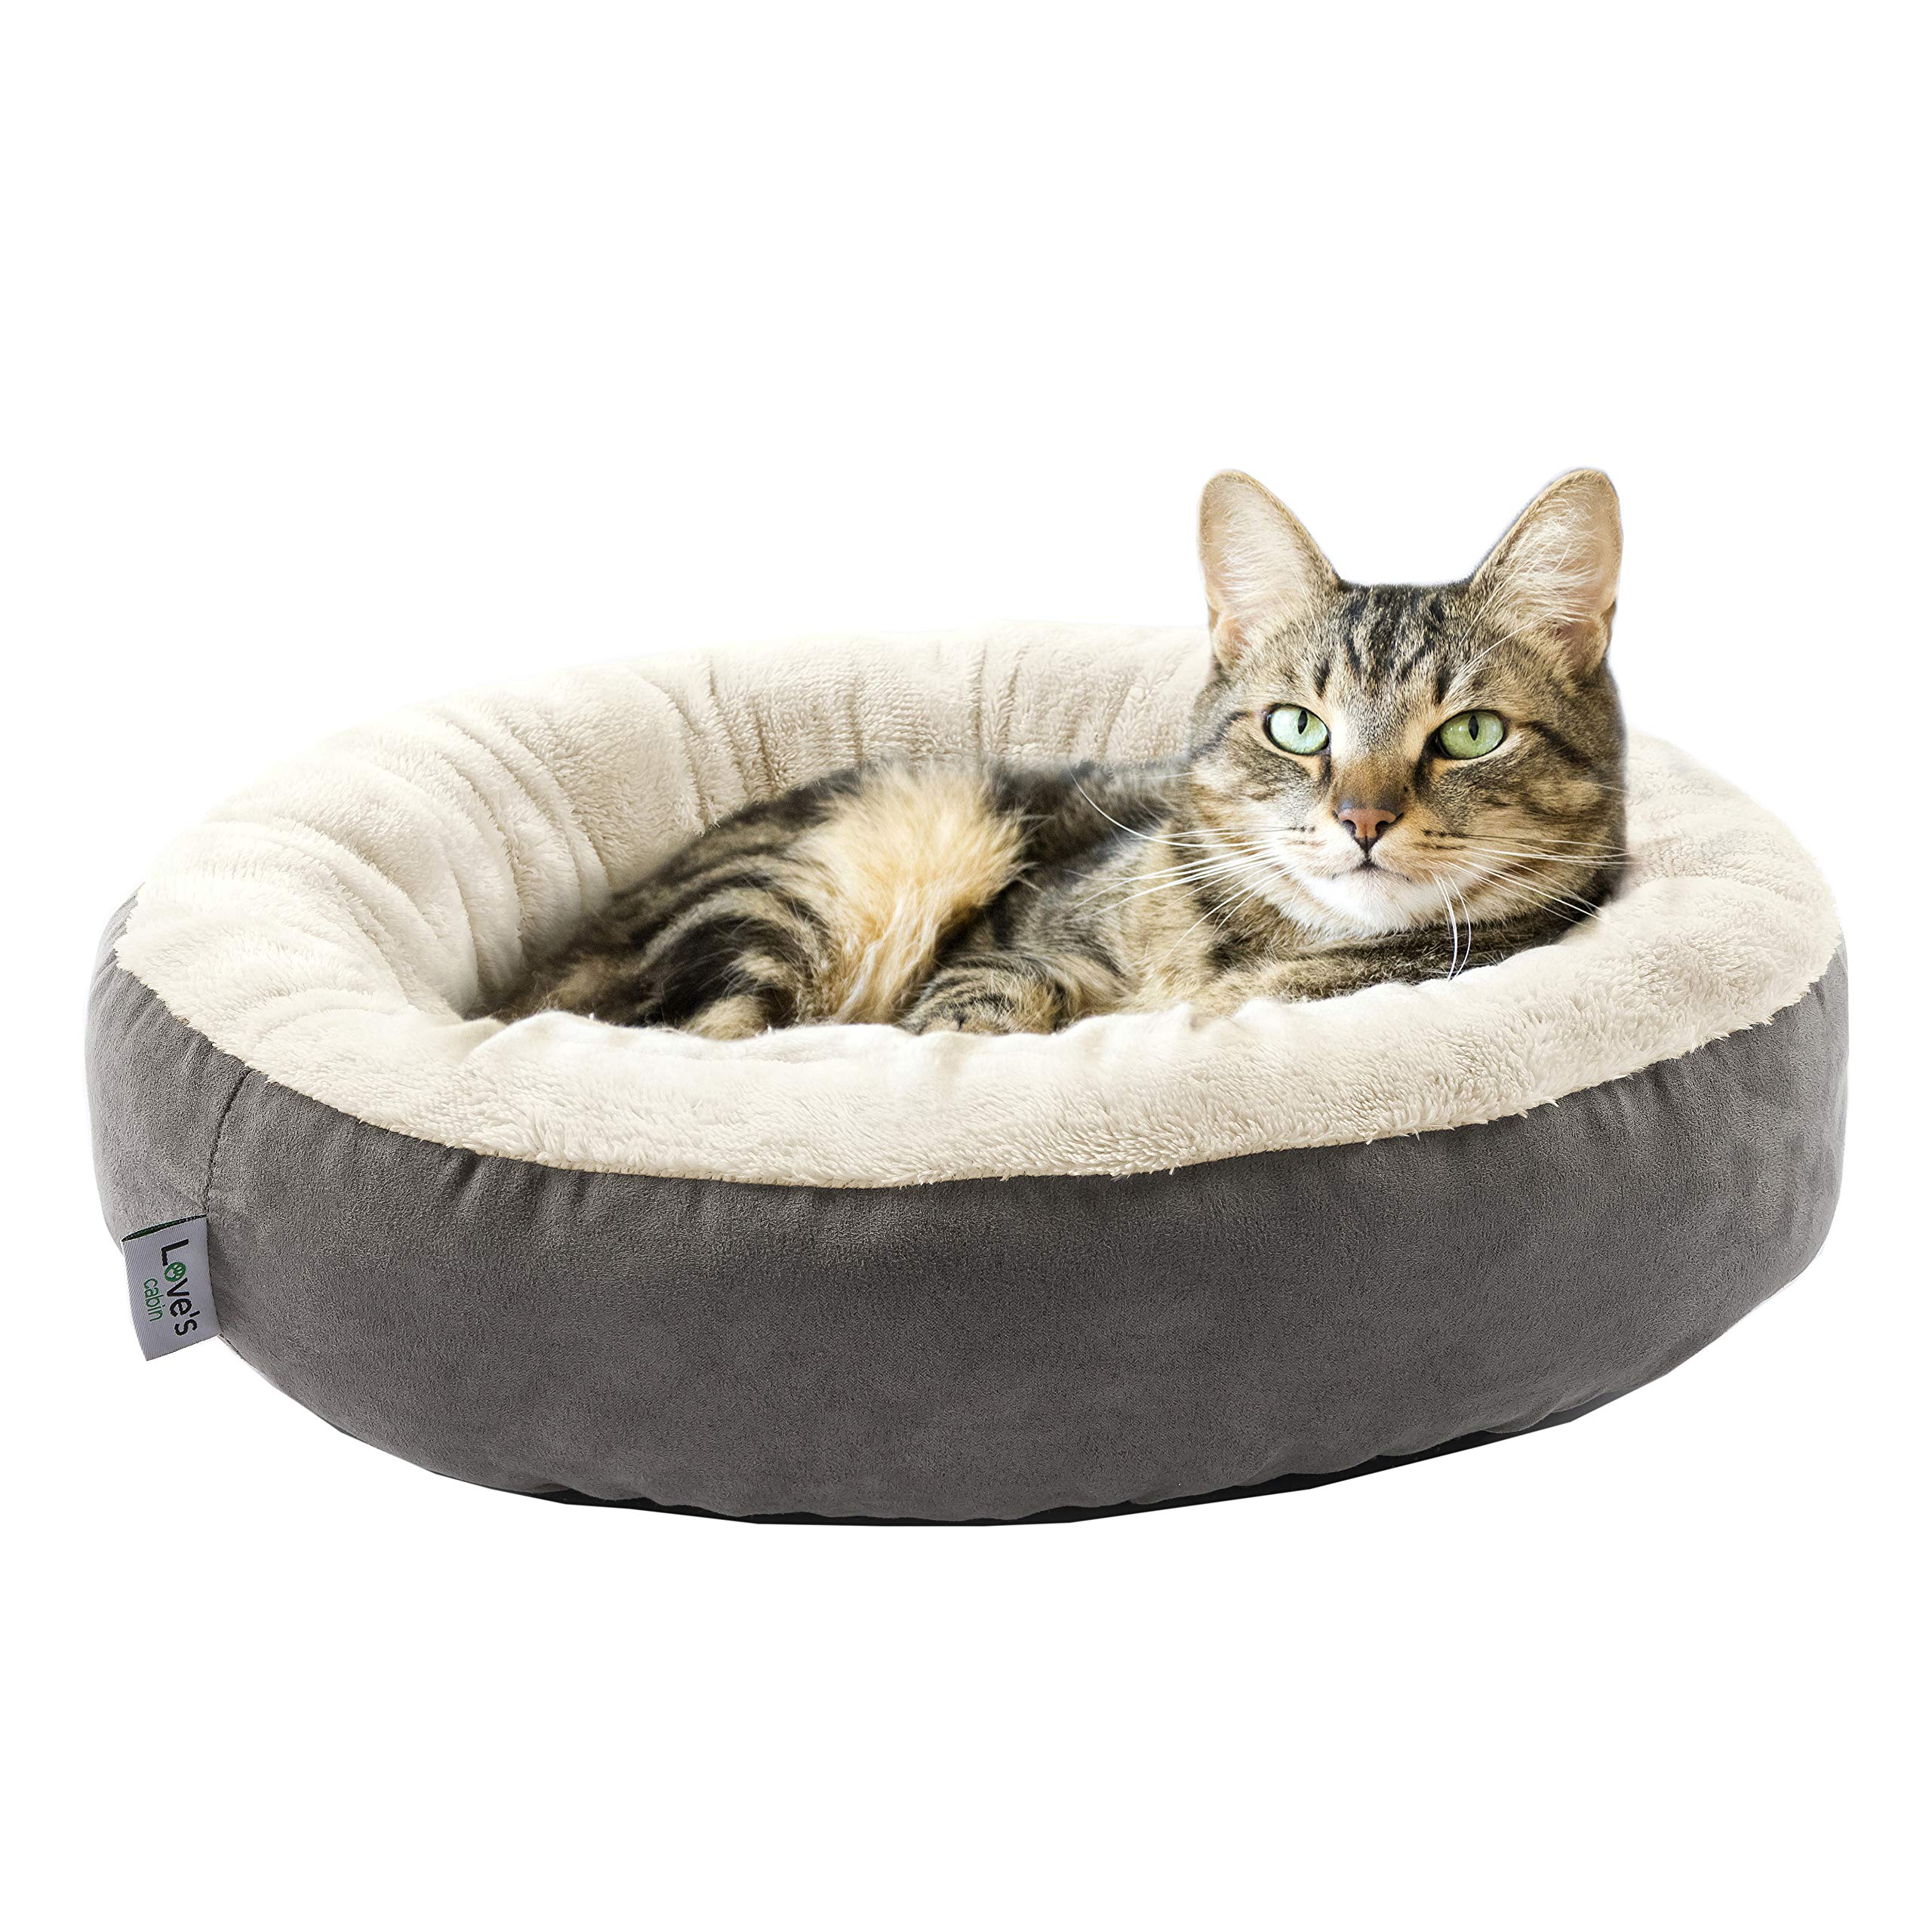 Love's cabin Round Donut Cat and Dog Cushion Bed, 20in Pet Bed for Cats or Small Dogs, Anti-Slip & Water-Resistant Bottom, Super Soft Durable Fabric Pet beds, Washable Luxury Cat & Dog Bed Gray by Love's cabin